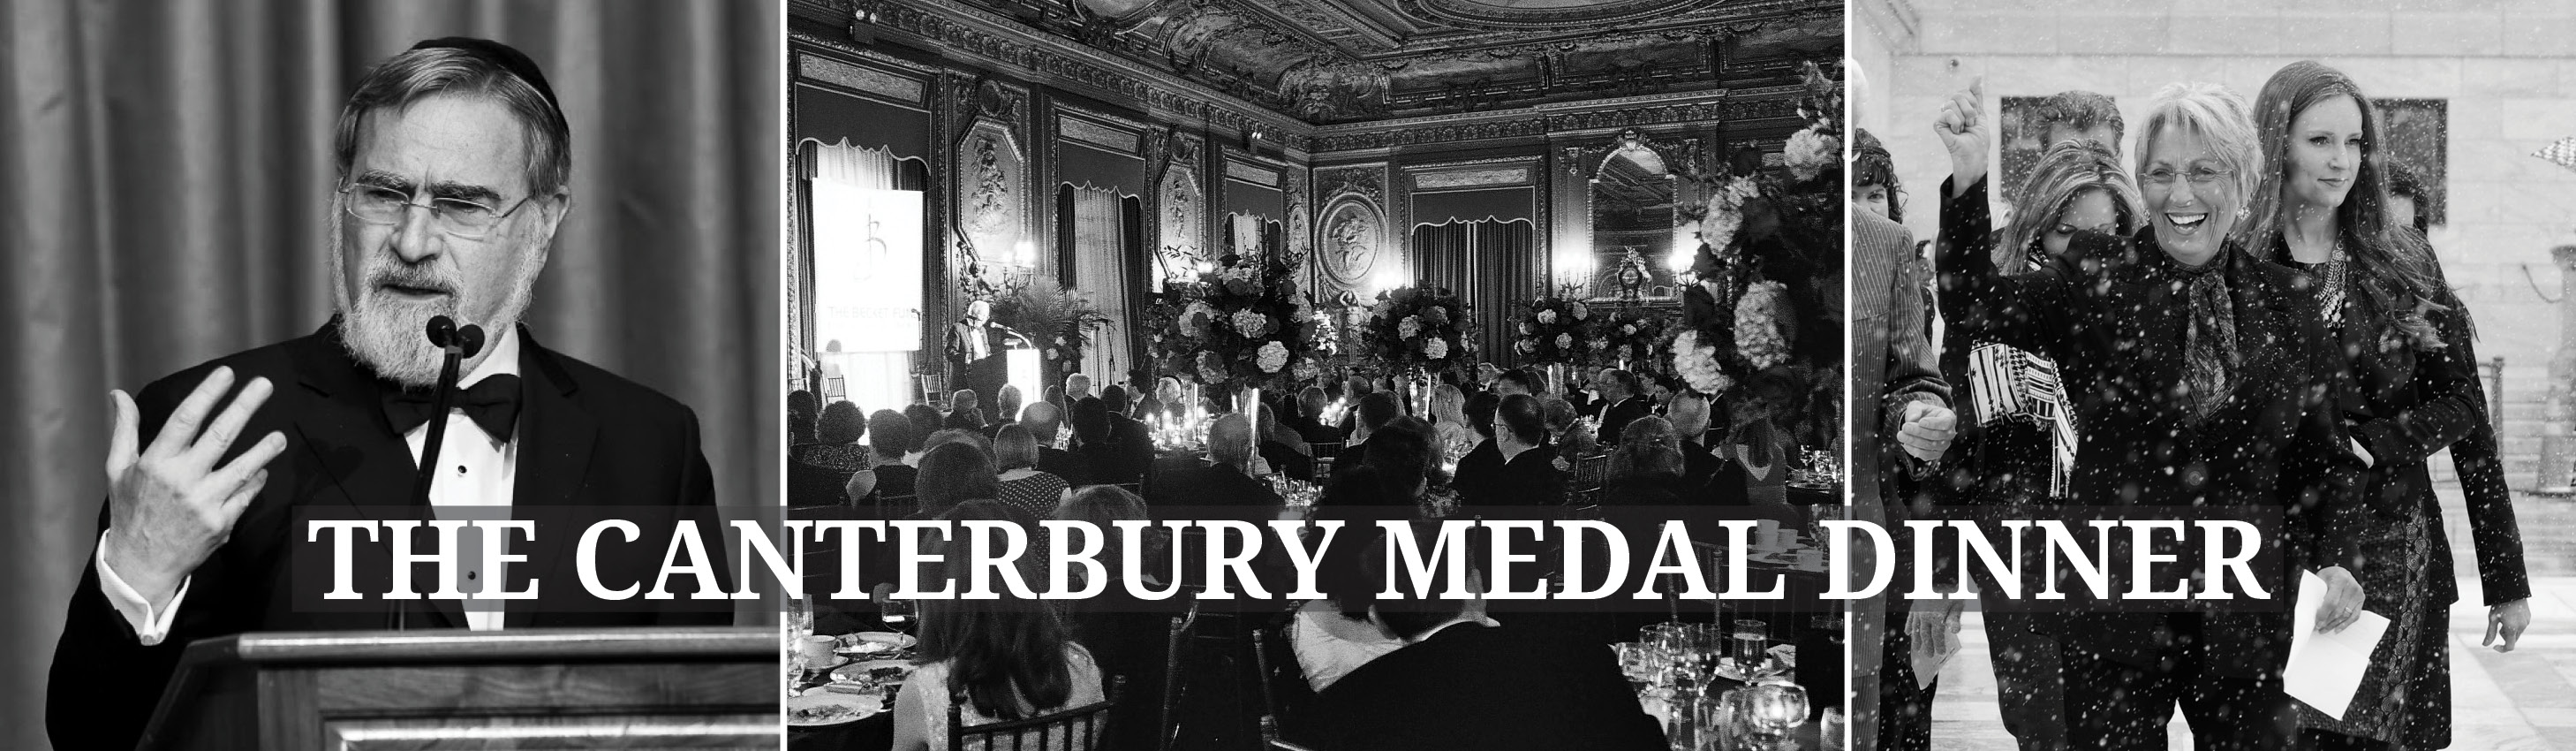 The Canterbury Medal Dinner